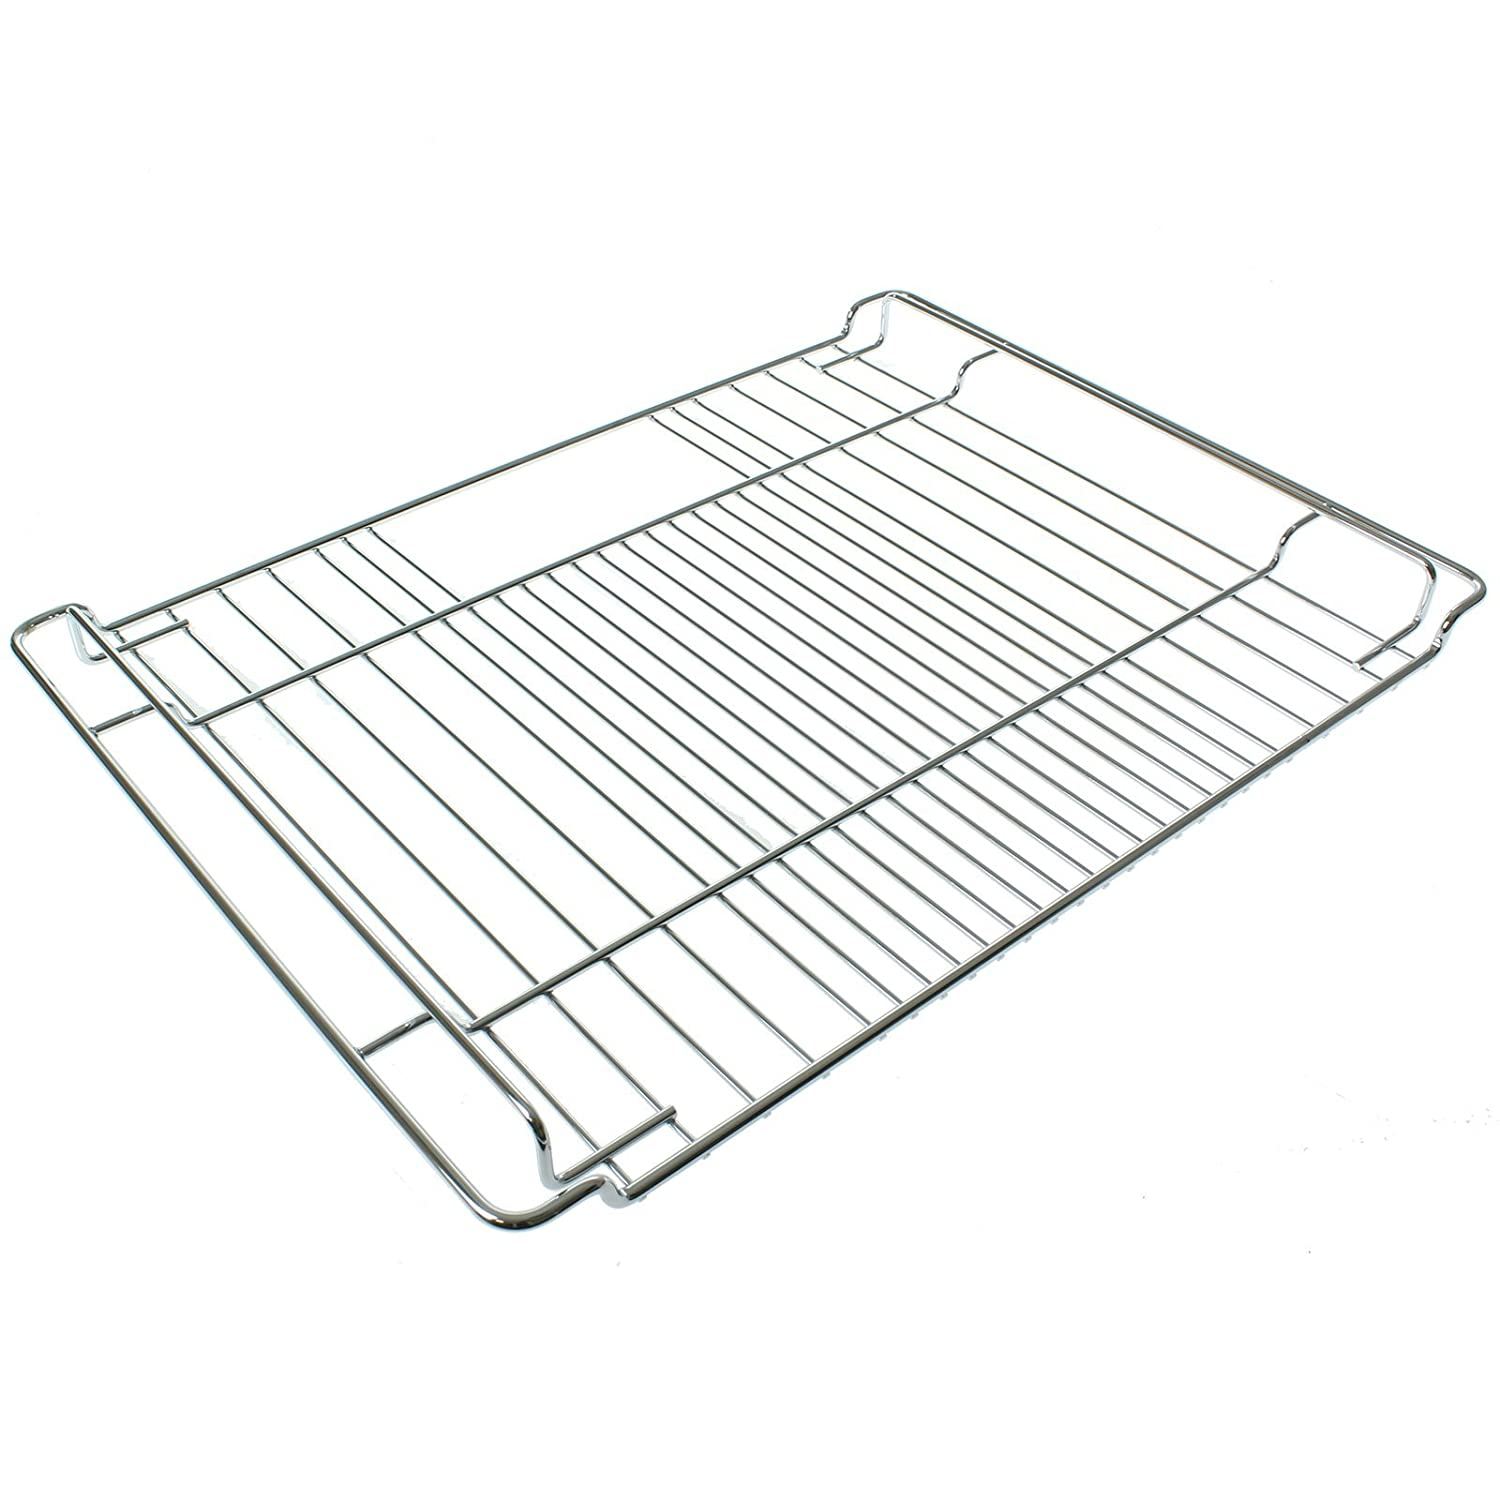 Genuine Neff Oven Cooker Grill Pan Shelf Grid